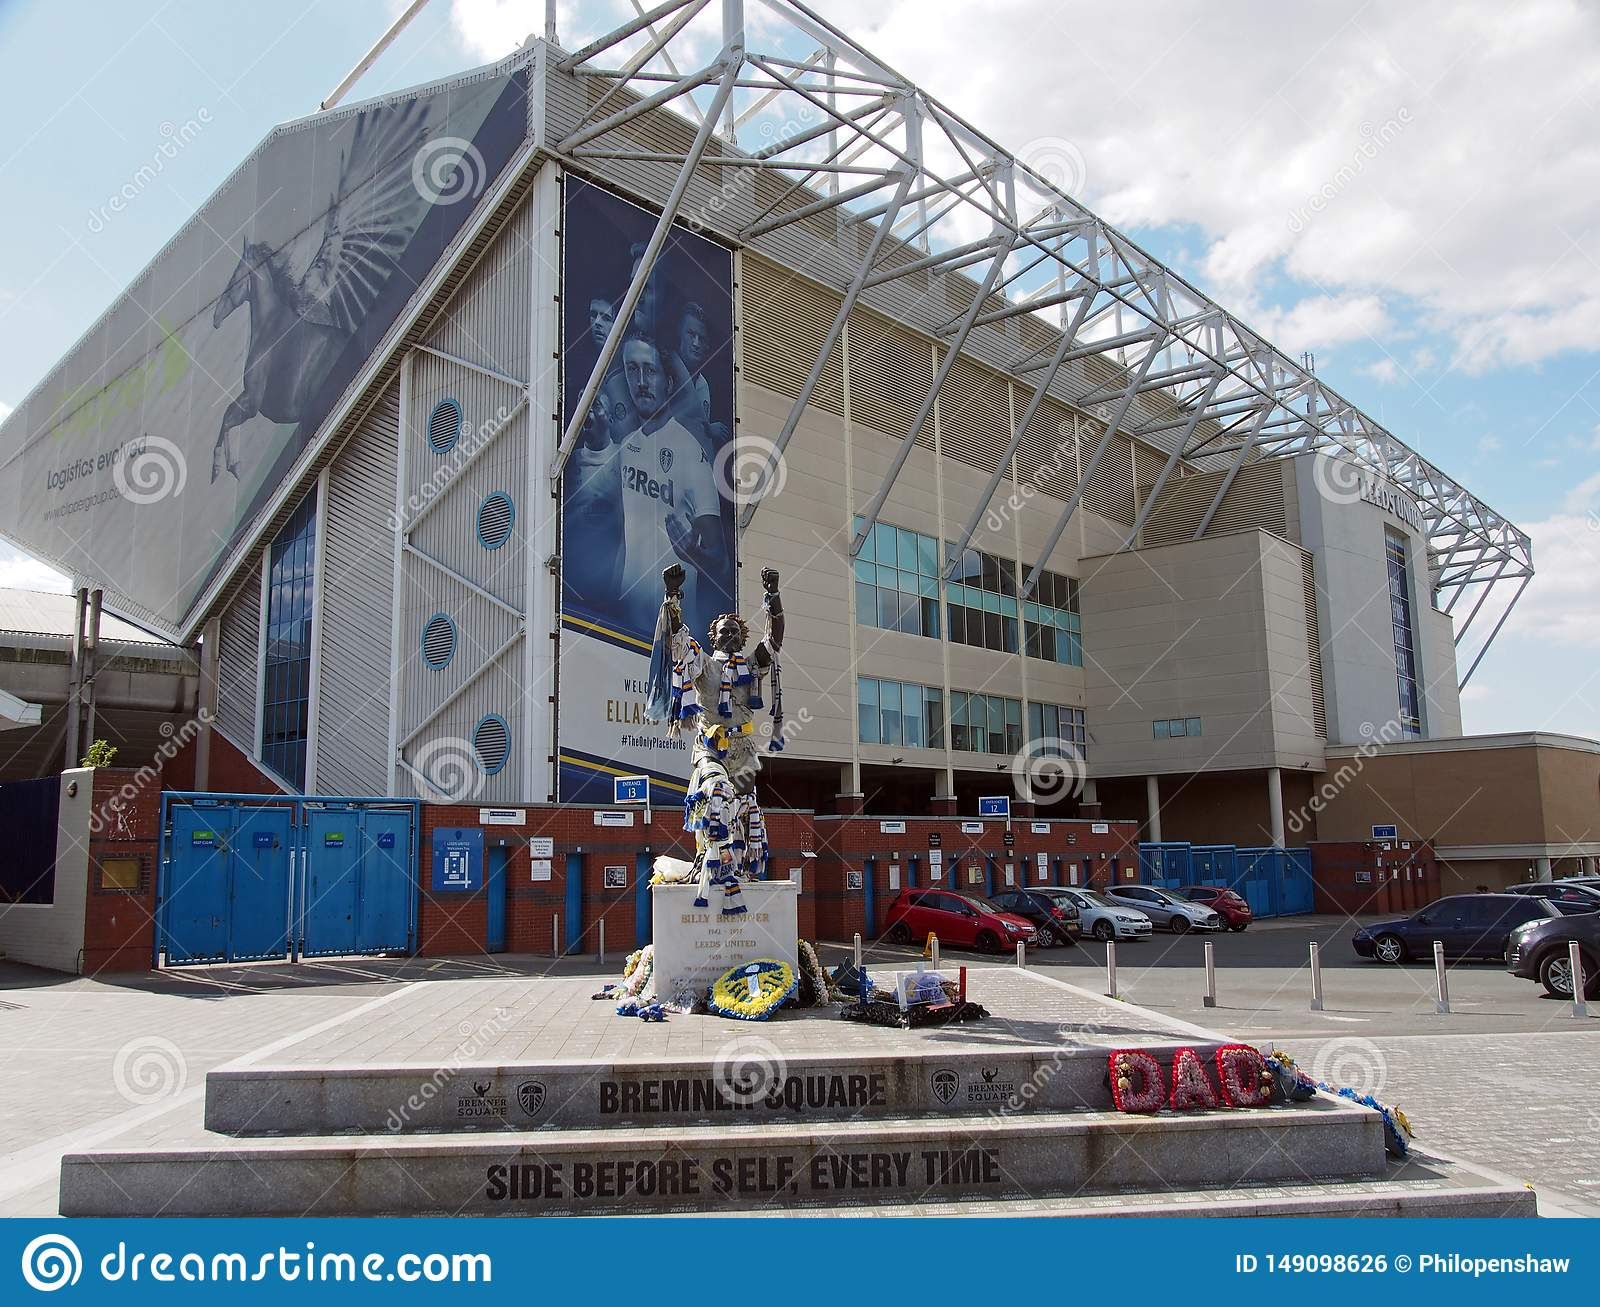 Elland Road Football Stadium The Home Of Leeds United Witth Bremner Square Decorated With Team Scarves And Shirts On The Day After Editorial Photo Image Of Road Front 149098626